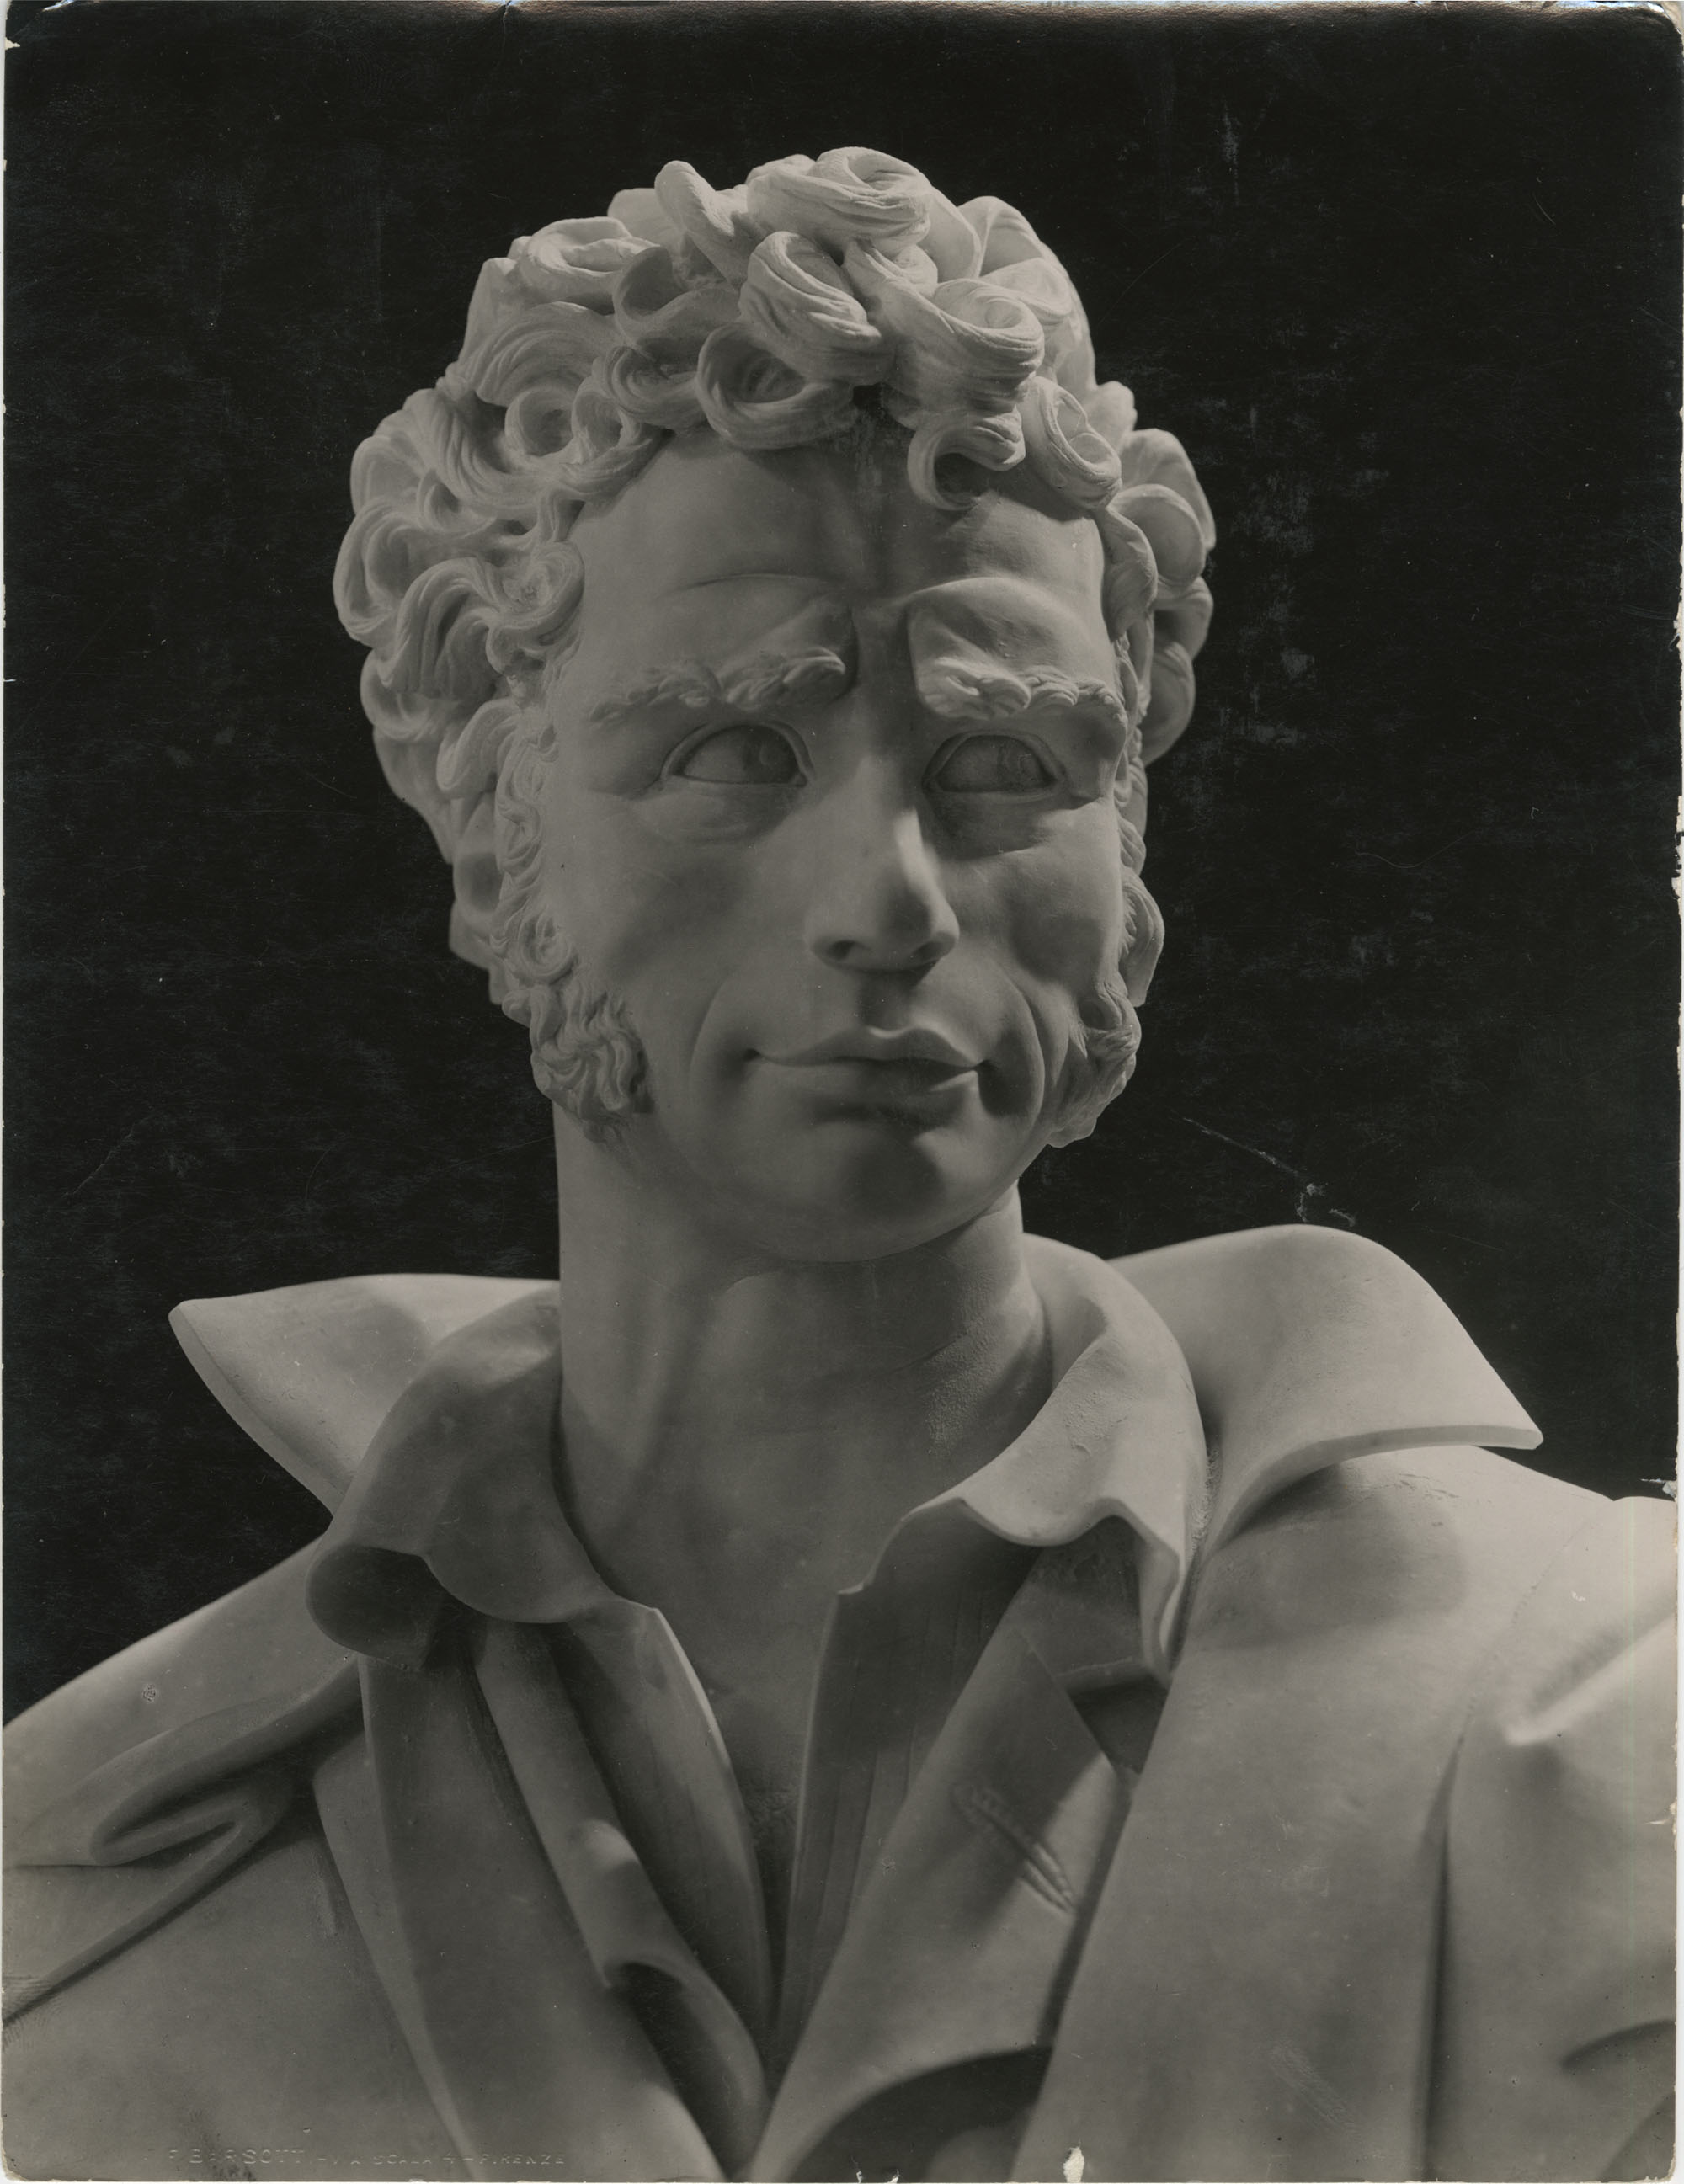 Sculpture of a man by Antonio Berti, Photograph 2